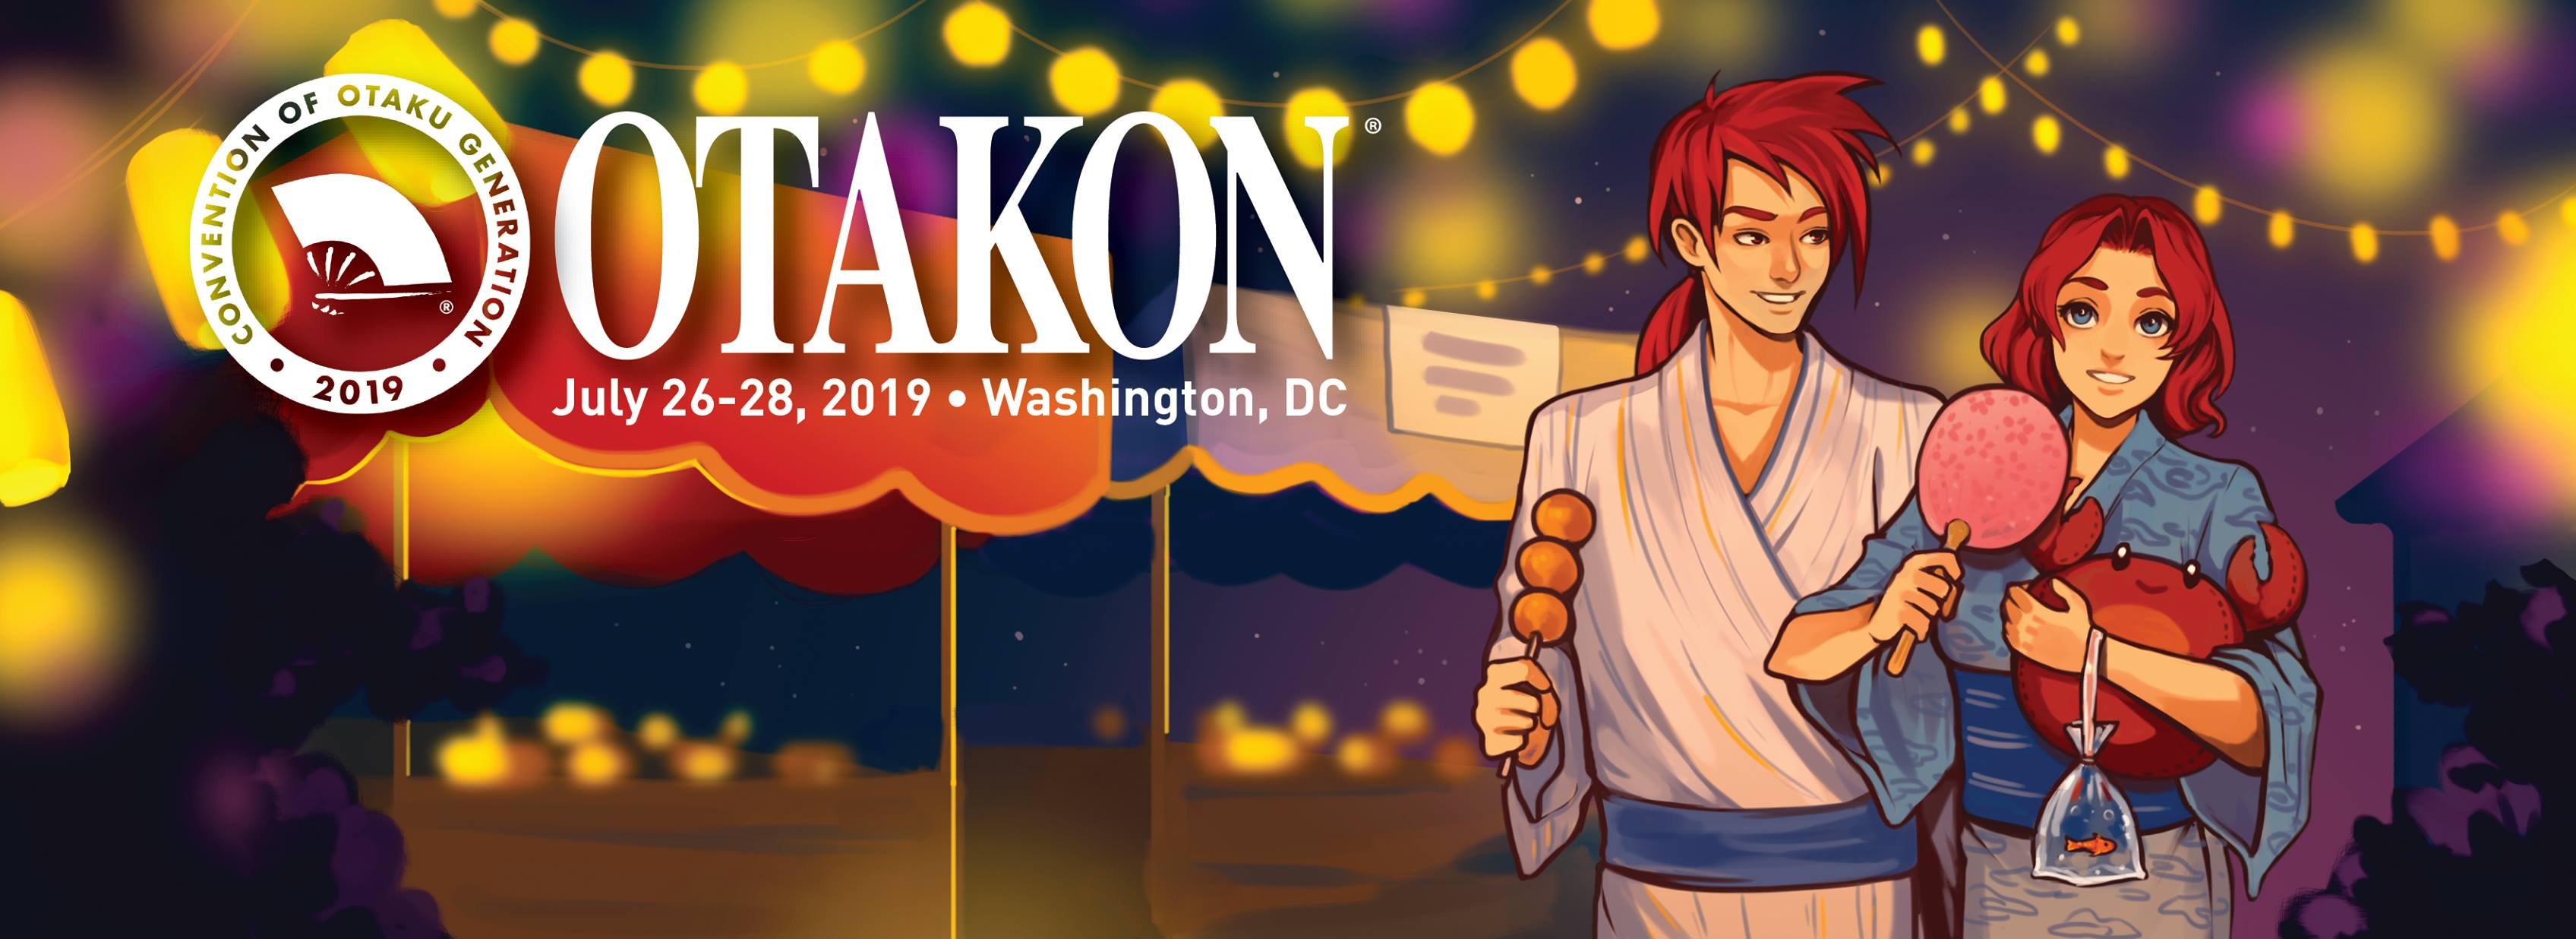 Otakon 2019 comicon adventures review discover and compare 100s of comic conventions